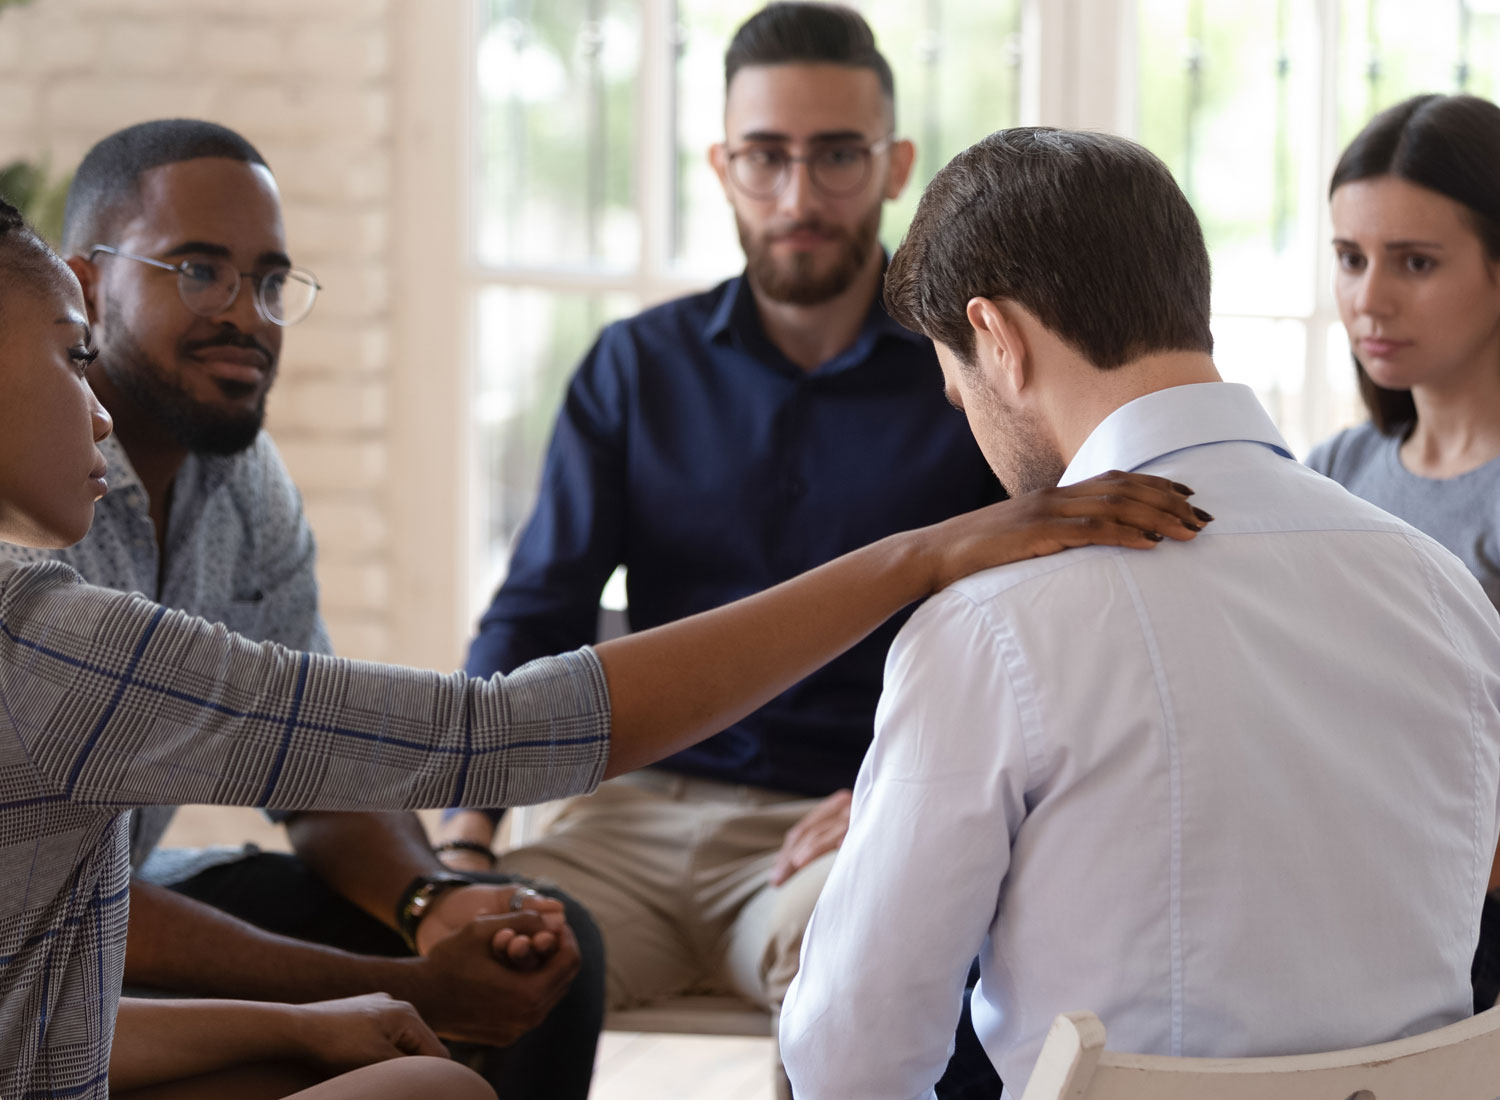 Mending Relationships during Family Therapy